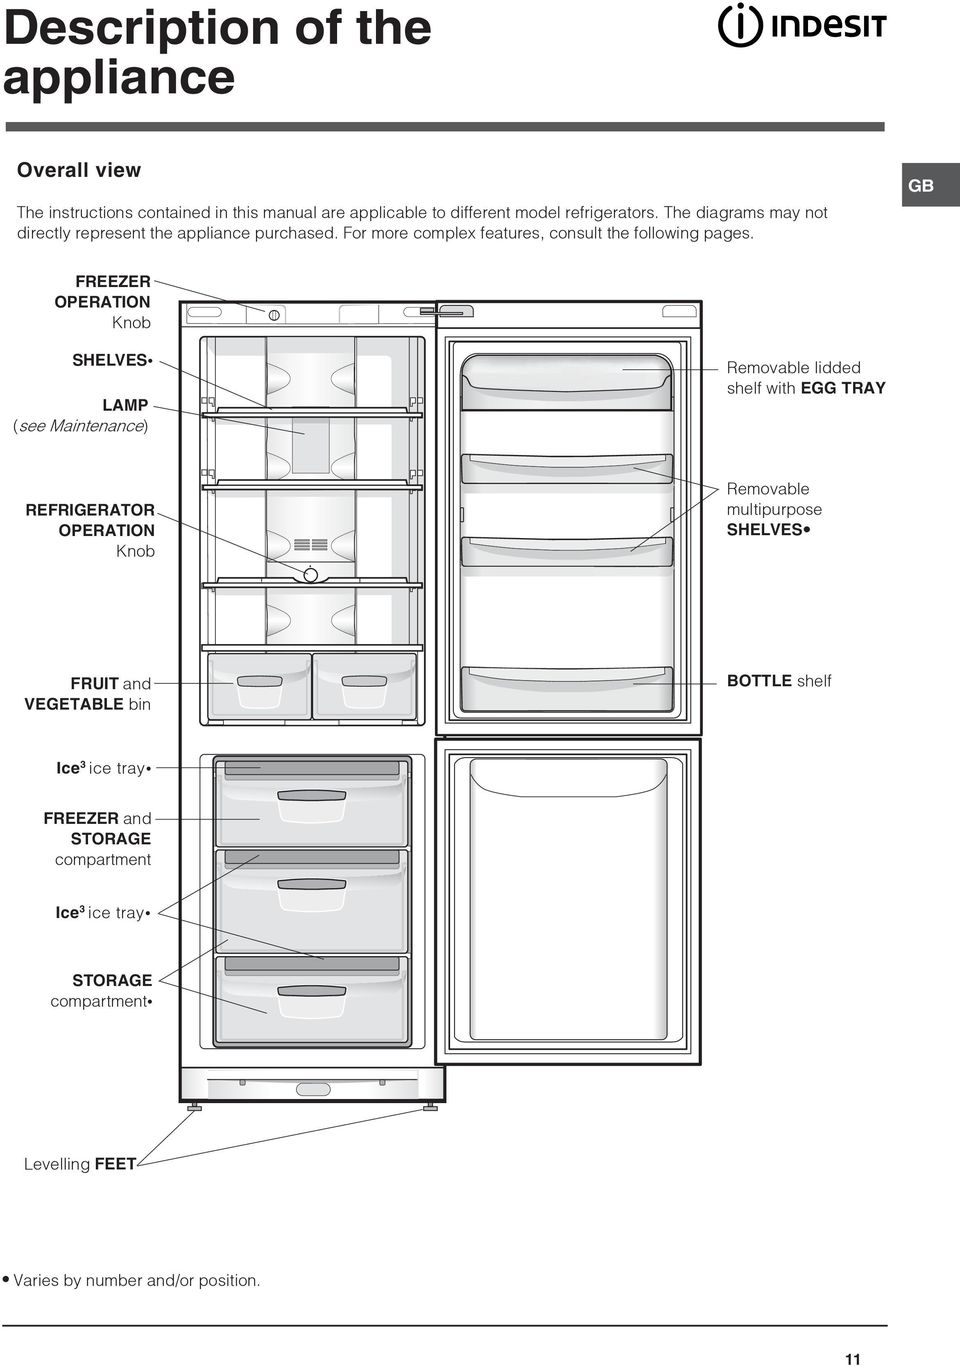 GB FREEZER OPERATION Knob SHELVES LAMP (see Maintenance) Removable lidded shelf with EGG TRAY REFRIGERATOR OPERATION Knob Removable multipurpose